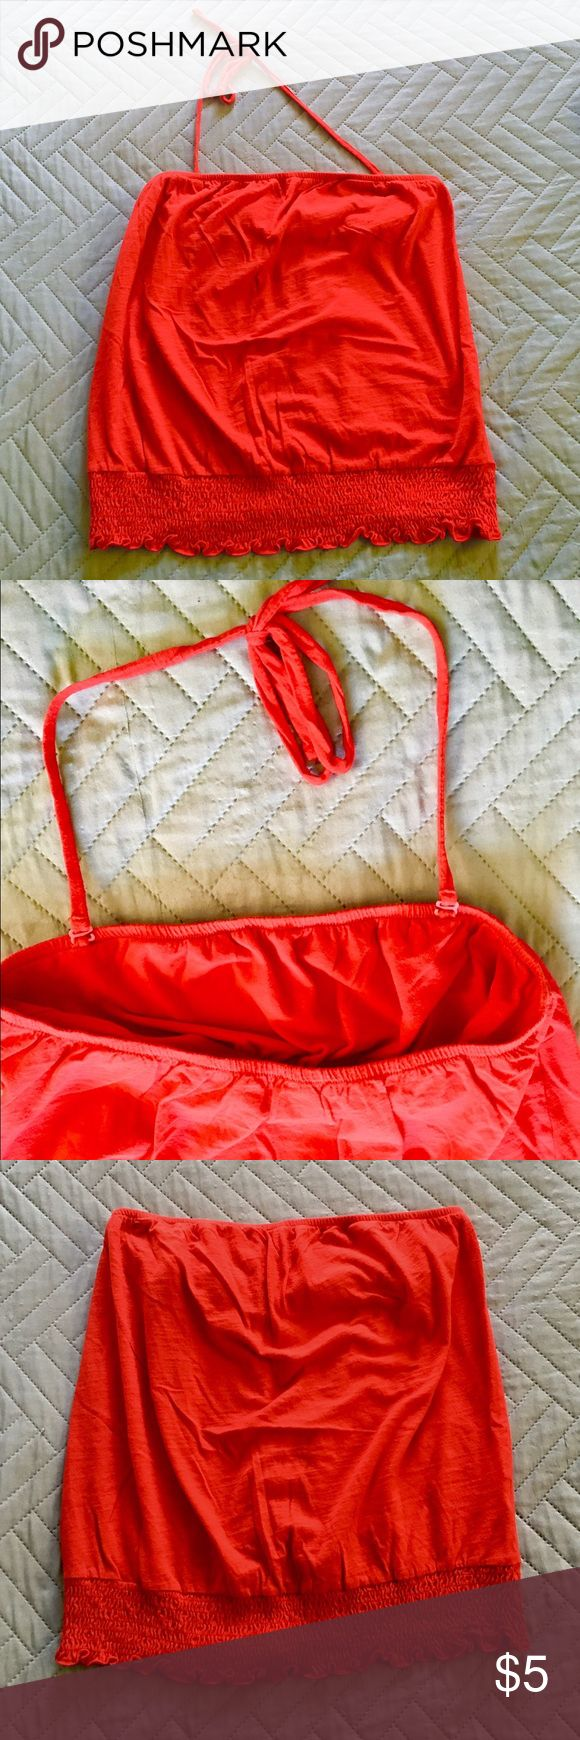 ON Convertible Red Halter Top It has detachable straps that converts it from a tube top to a halter top. Has an elastic ruched bottom. Perfect for spring/summer! Old Navy Tops